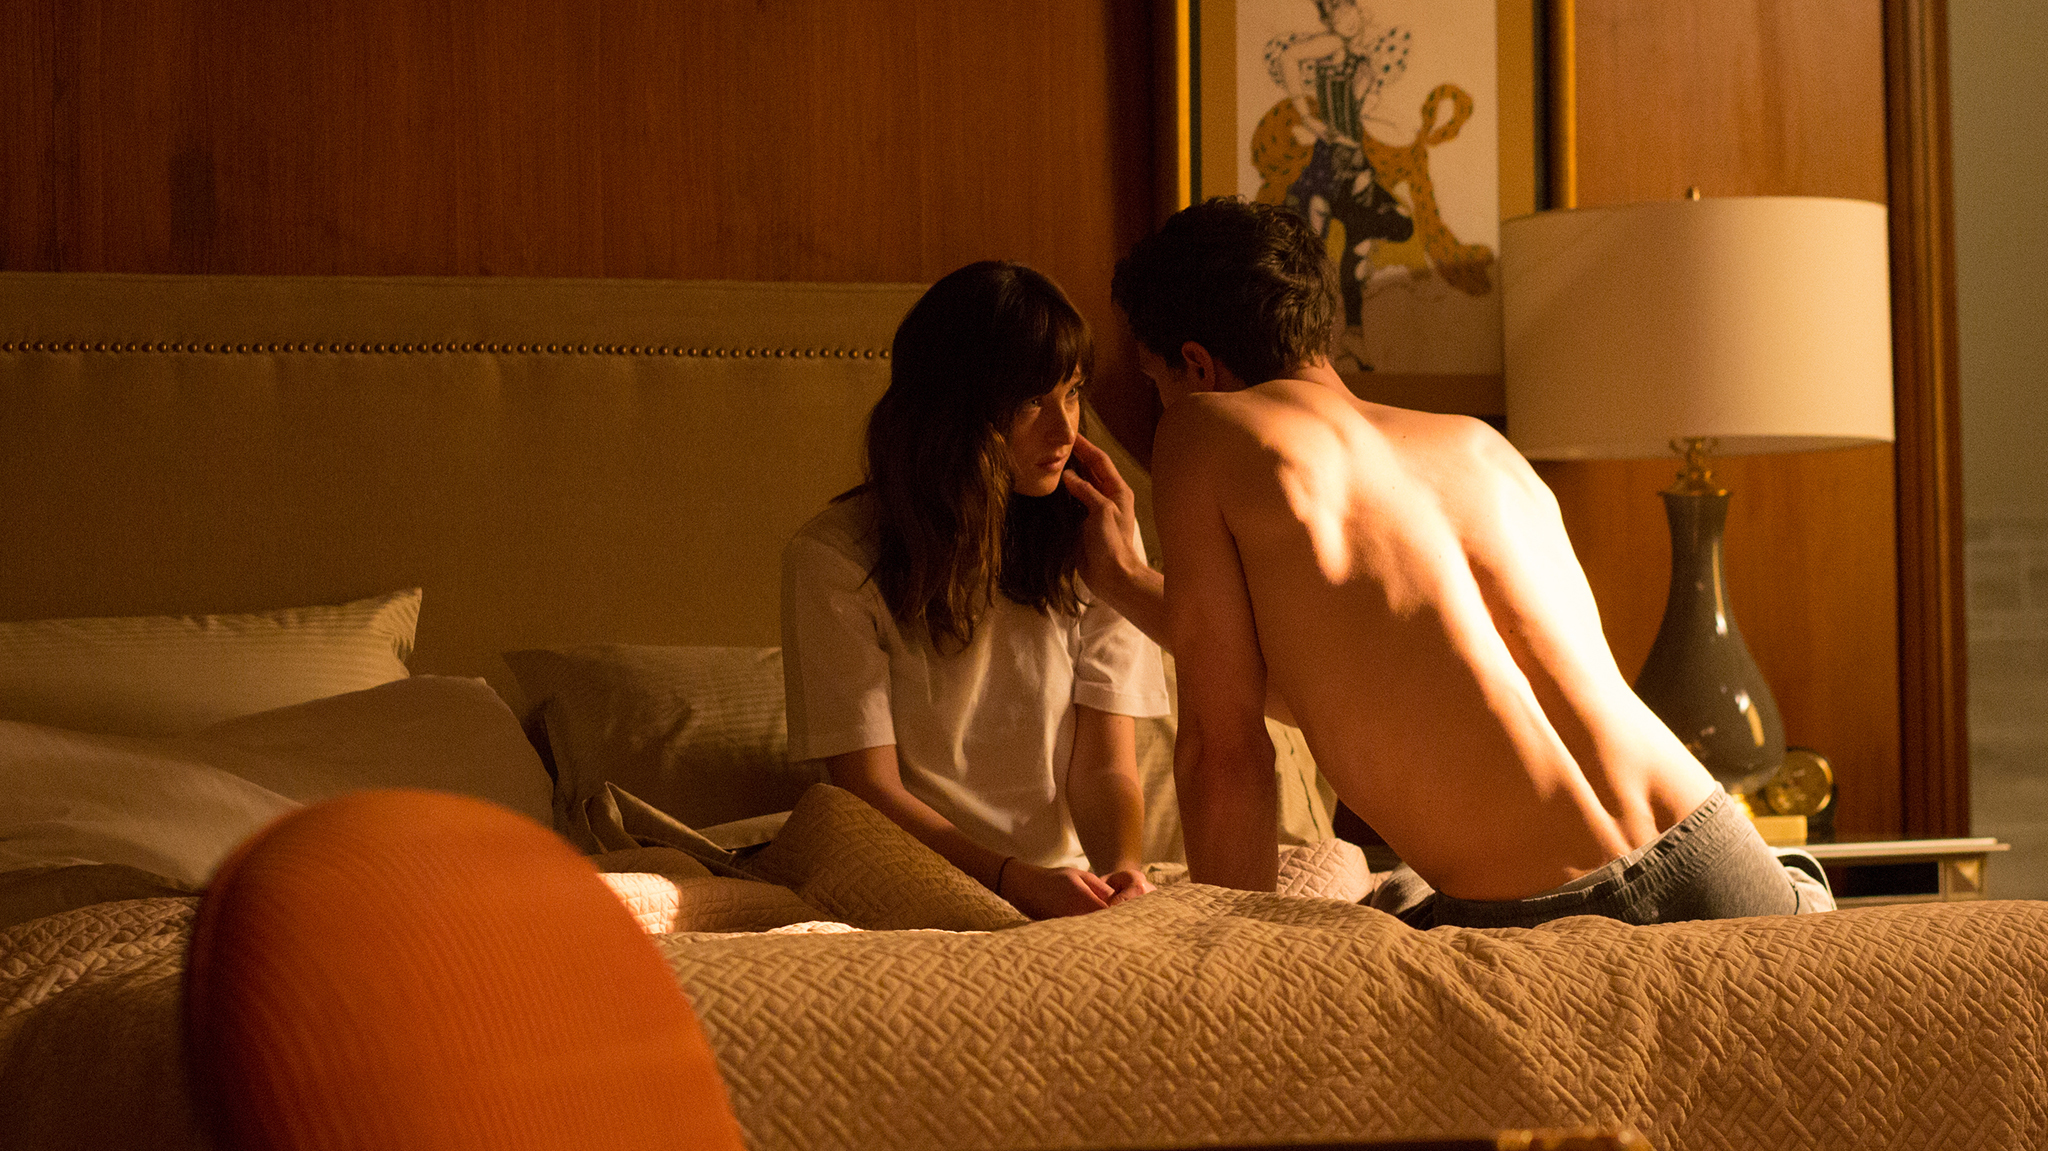 10 things we learned watching Fifty Shades of Grey